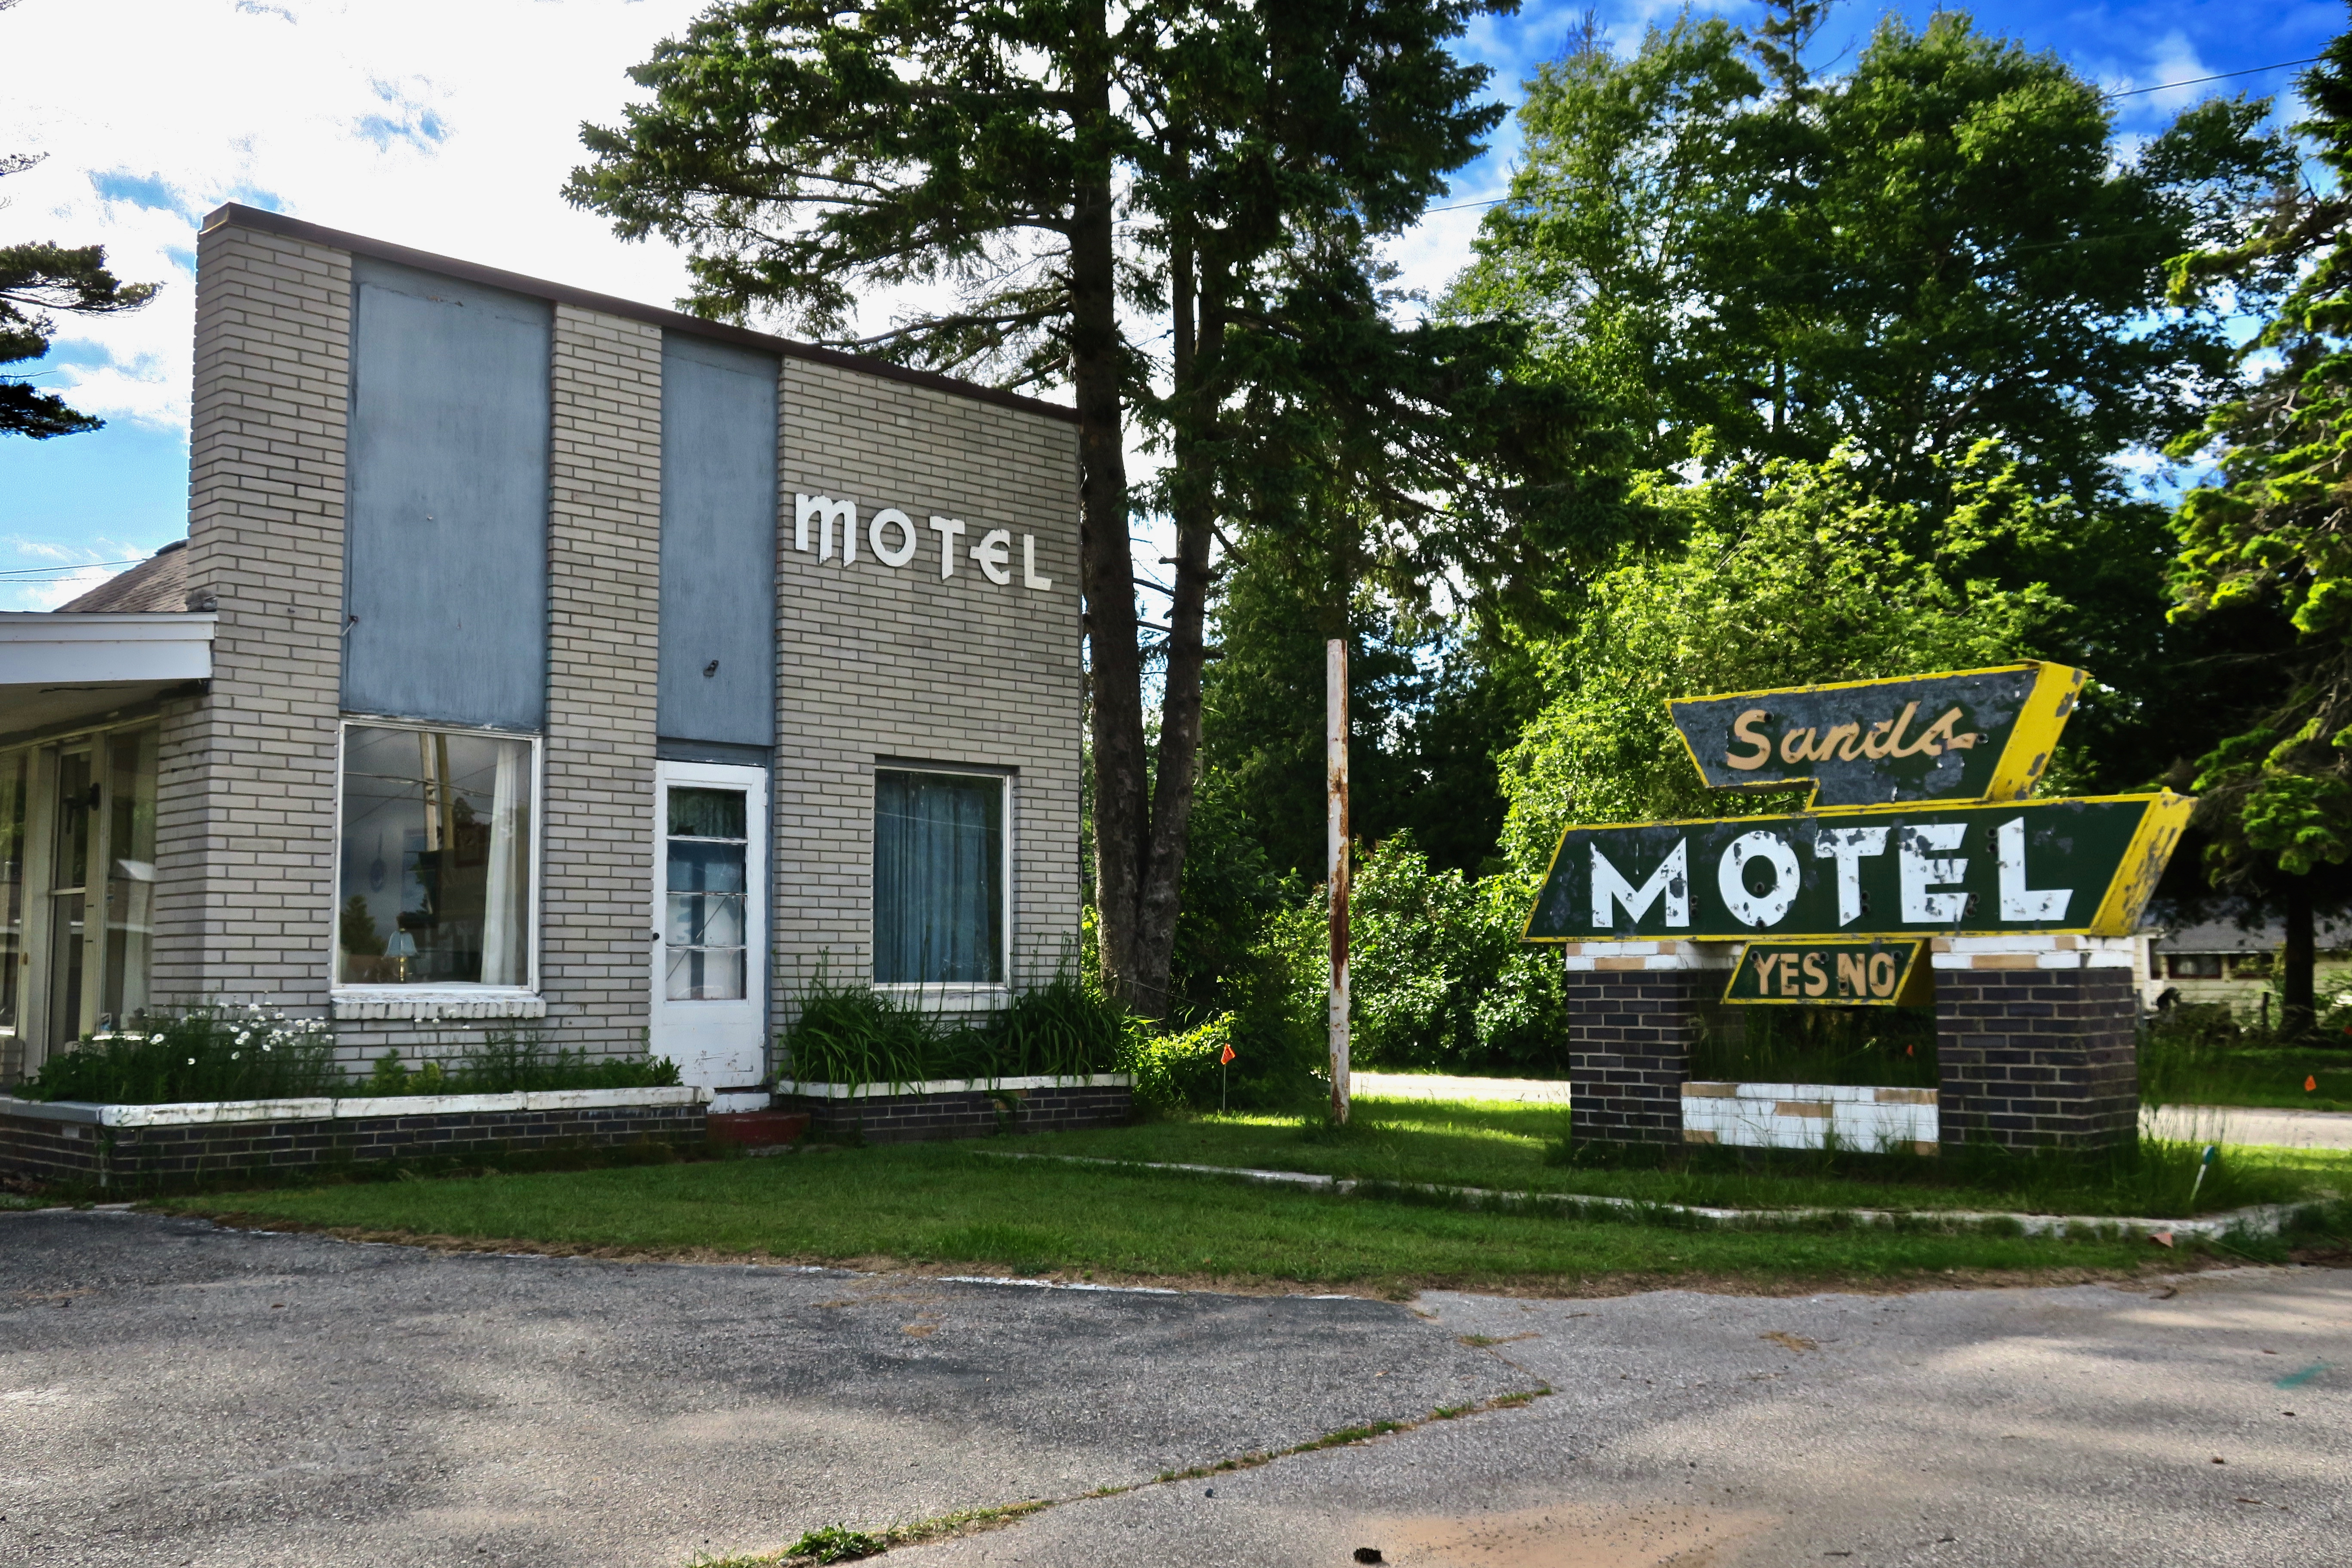 Sands Motel - Saint Ignace, Michigan U.S.A. - July 1, 2017